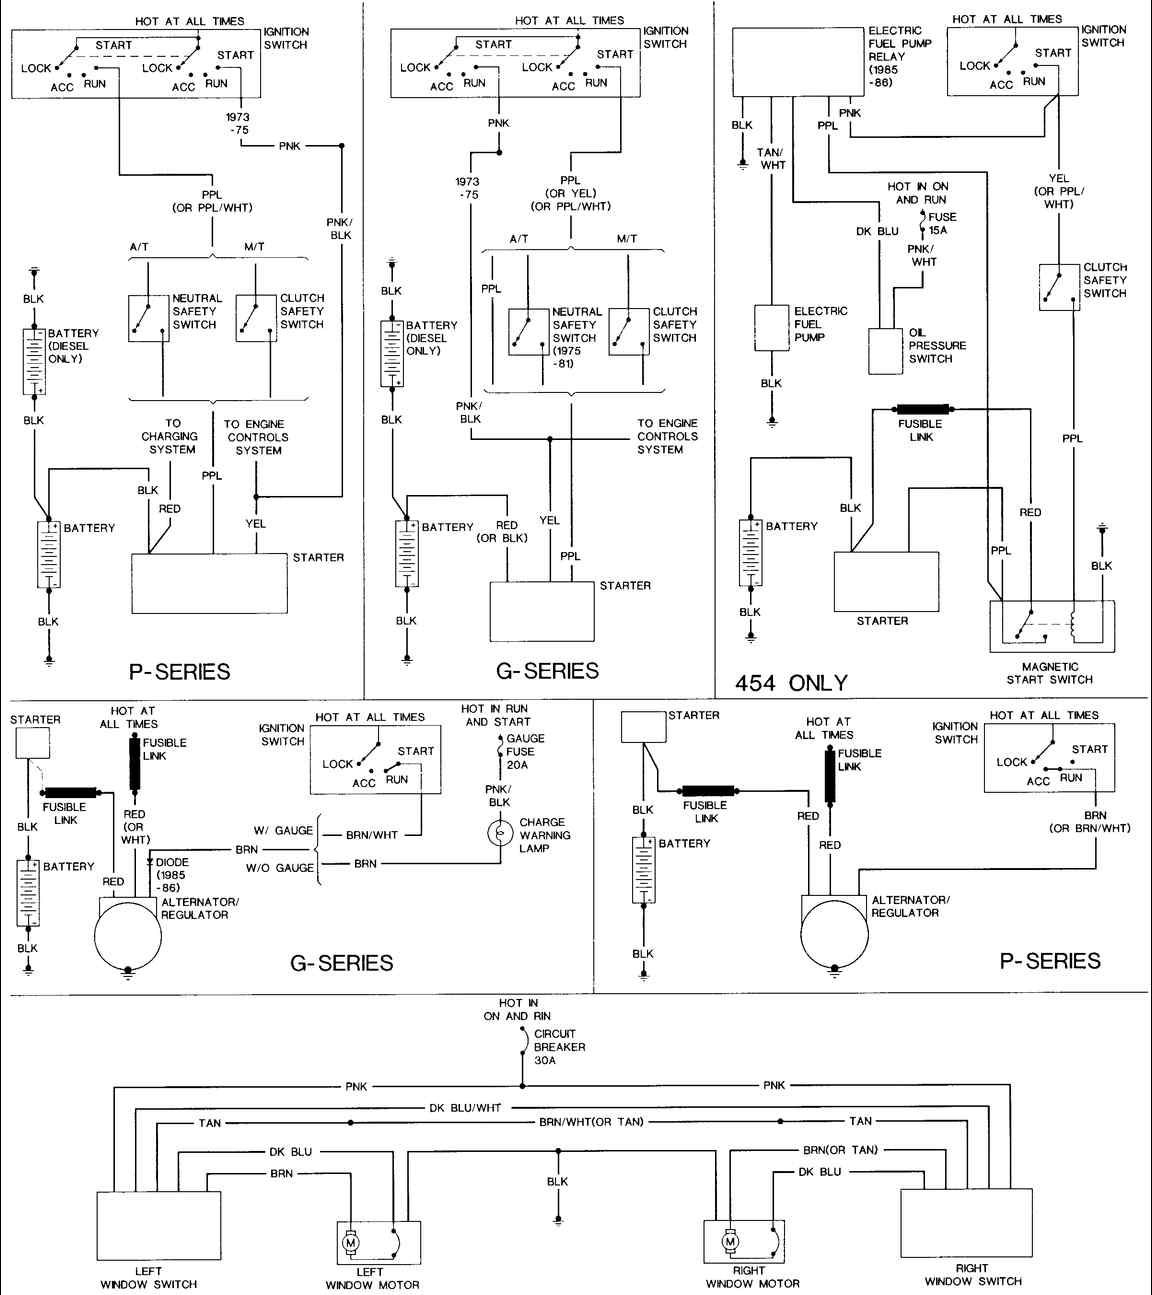 1986 sportster wiring diagram 1986 chevy truck wiring diagram model c - schematic wiring ... 1986 chevy wiring diagram